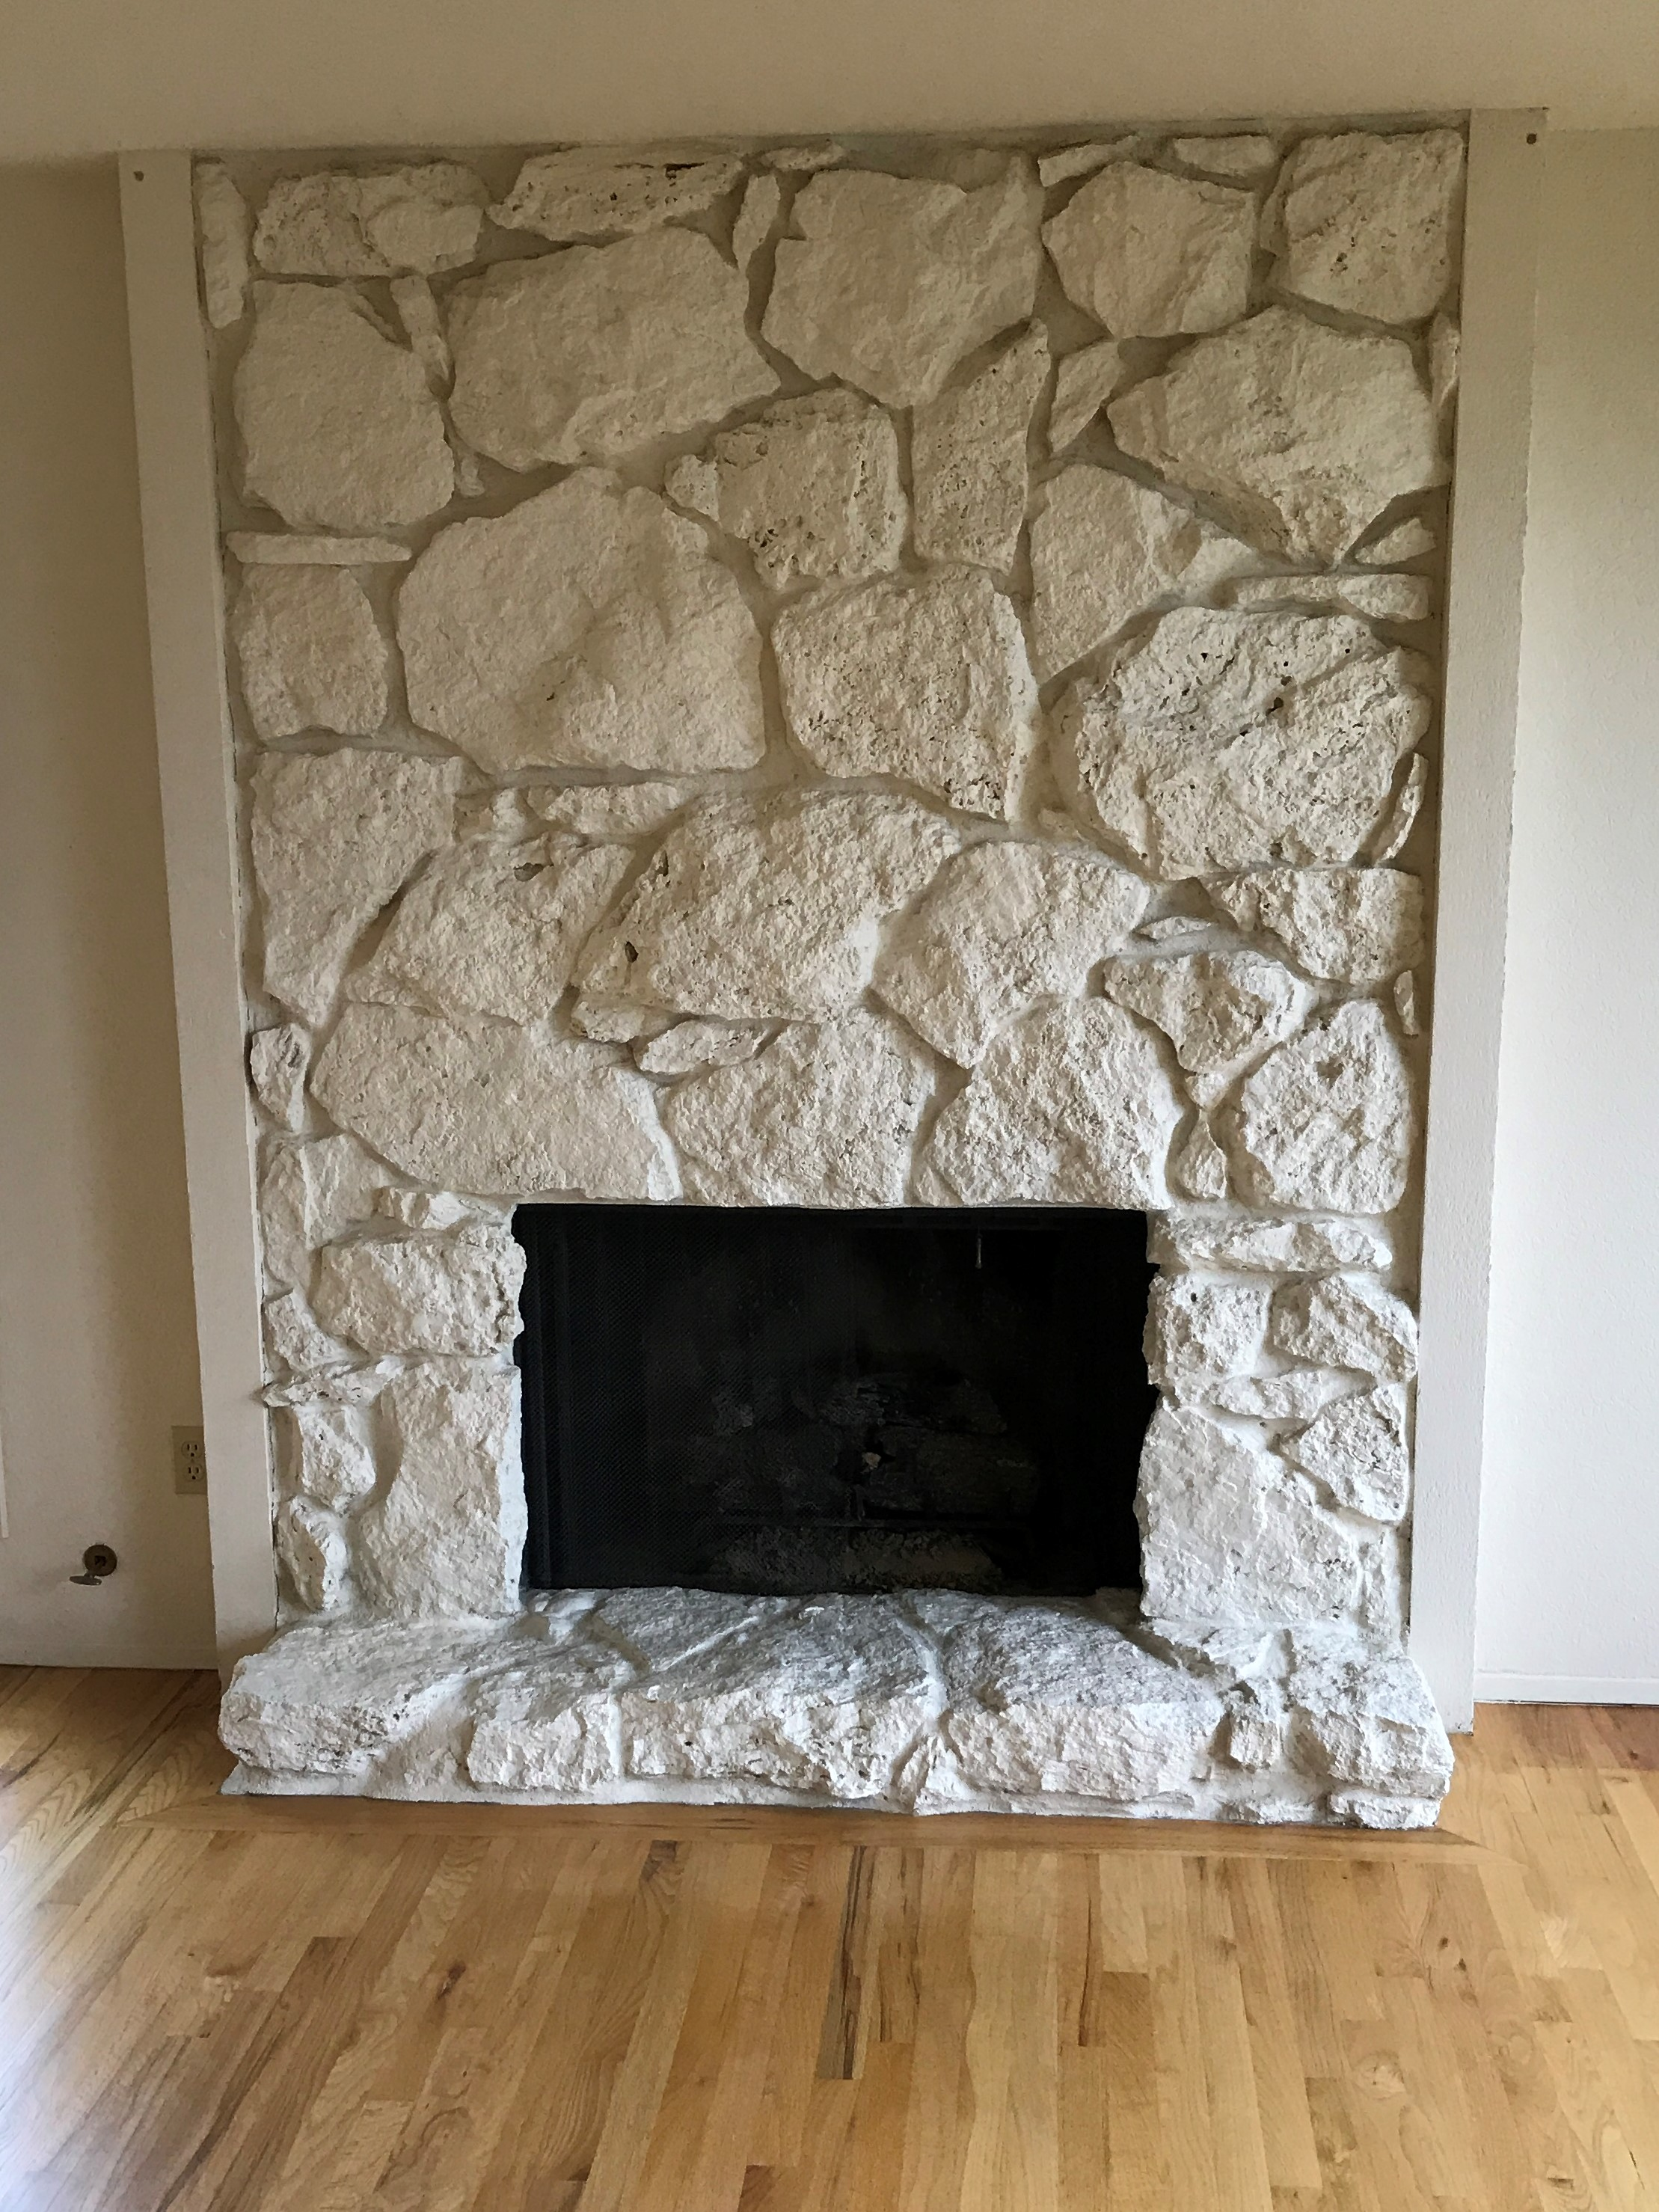 The 70's Called, They Want Their Fireplace Back.